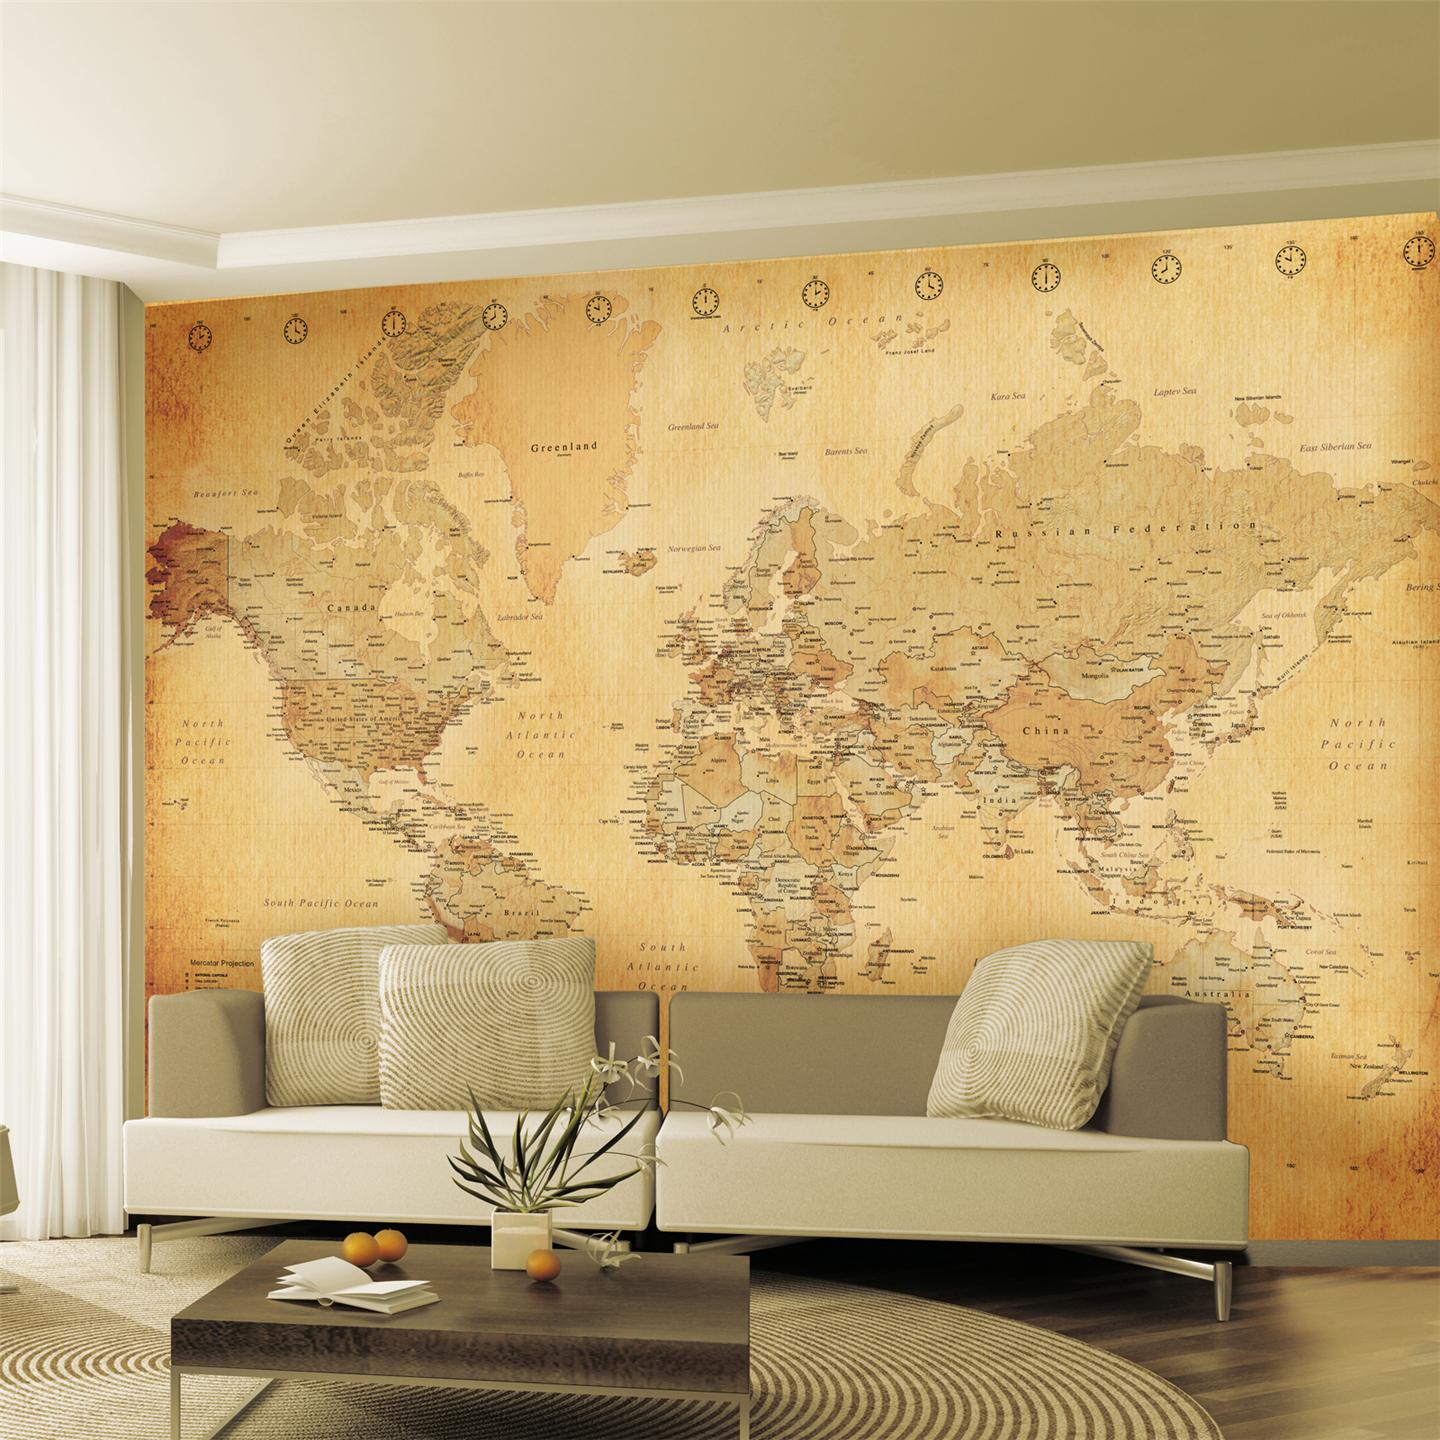 Large wallpaper feature wall murals landscapes for Create wall mural